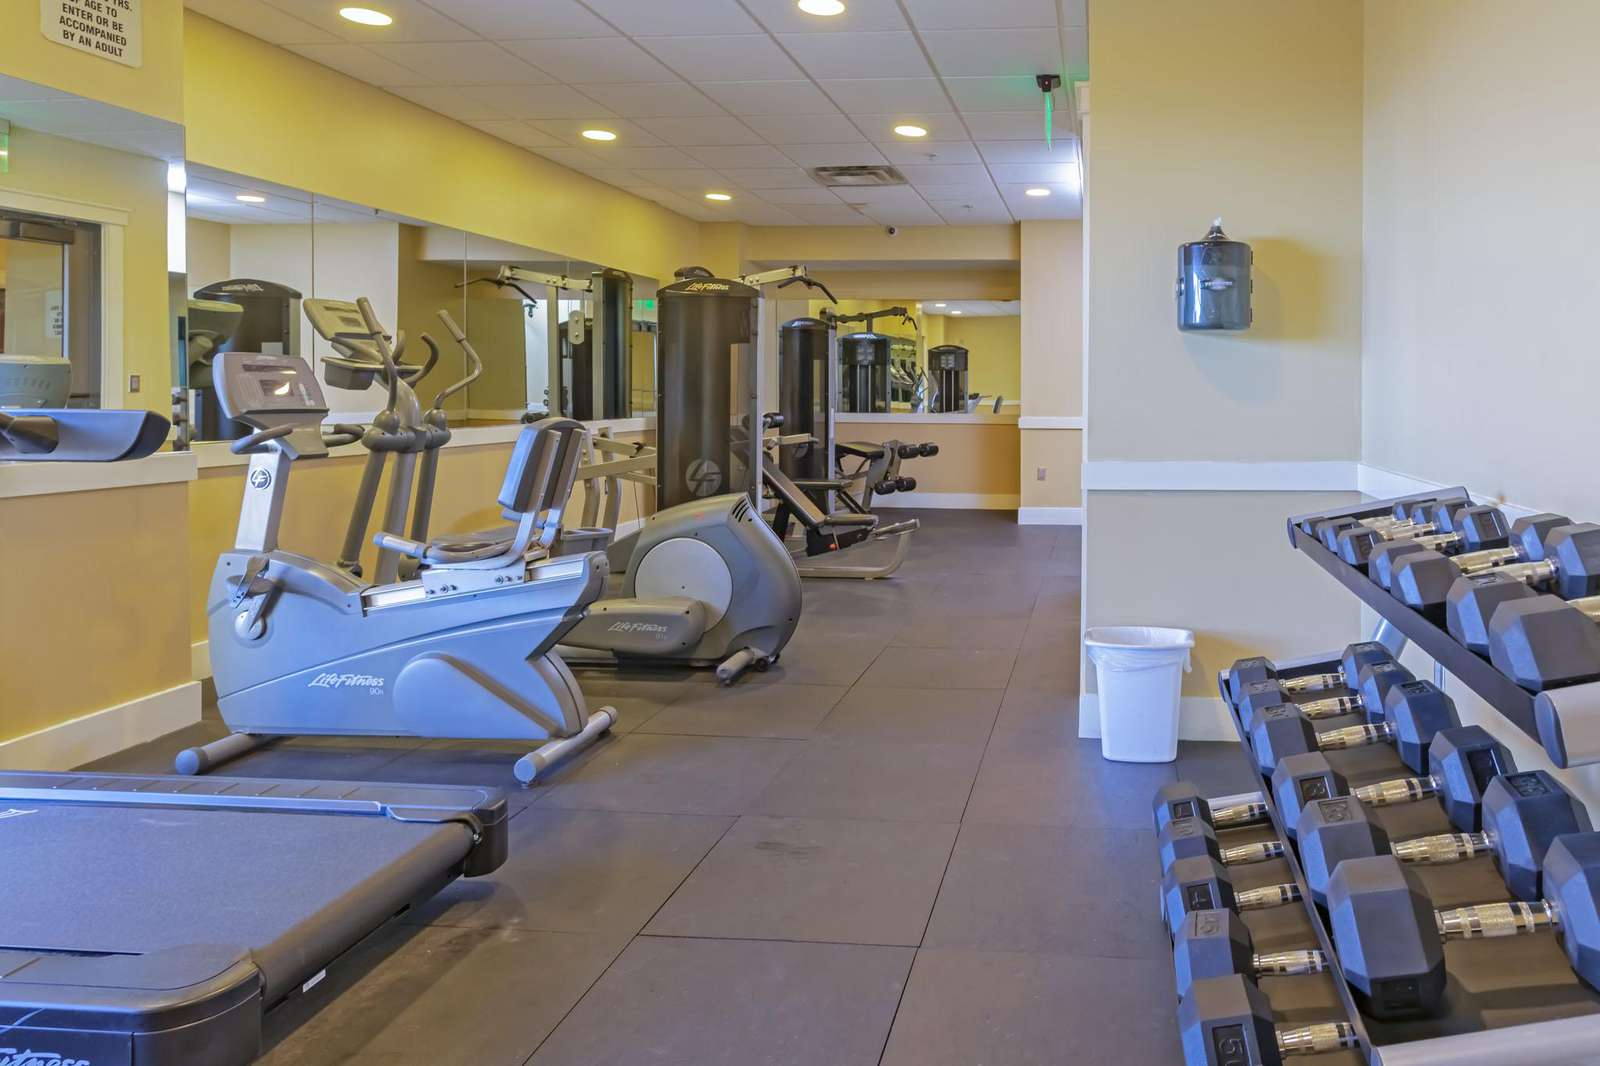 A great exercise area and equipment available!